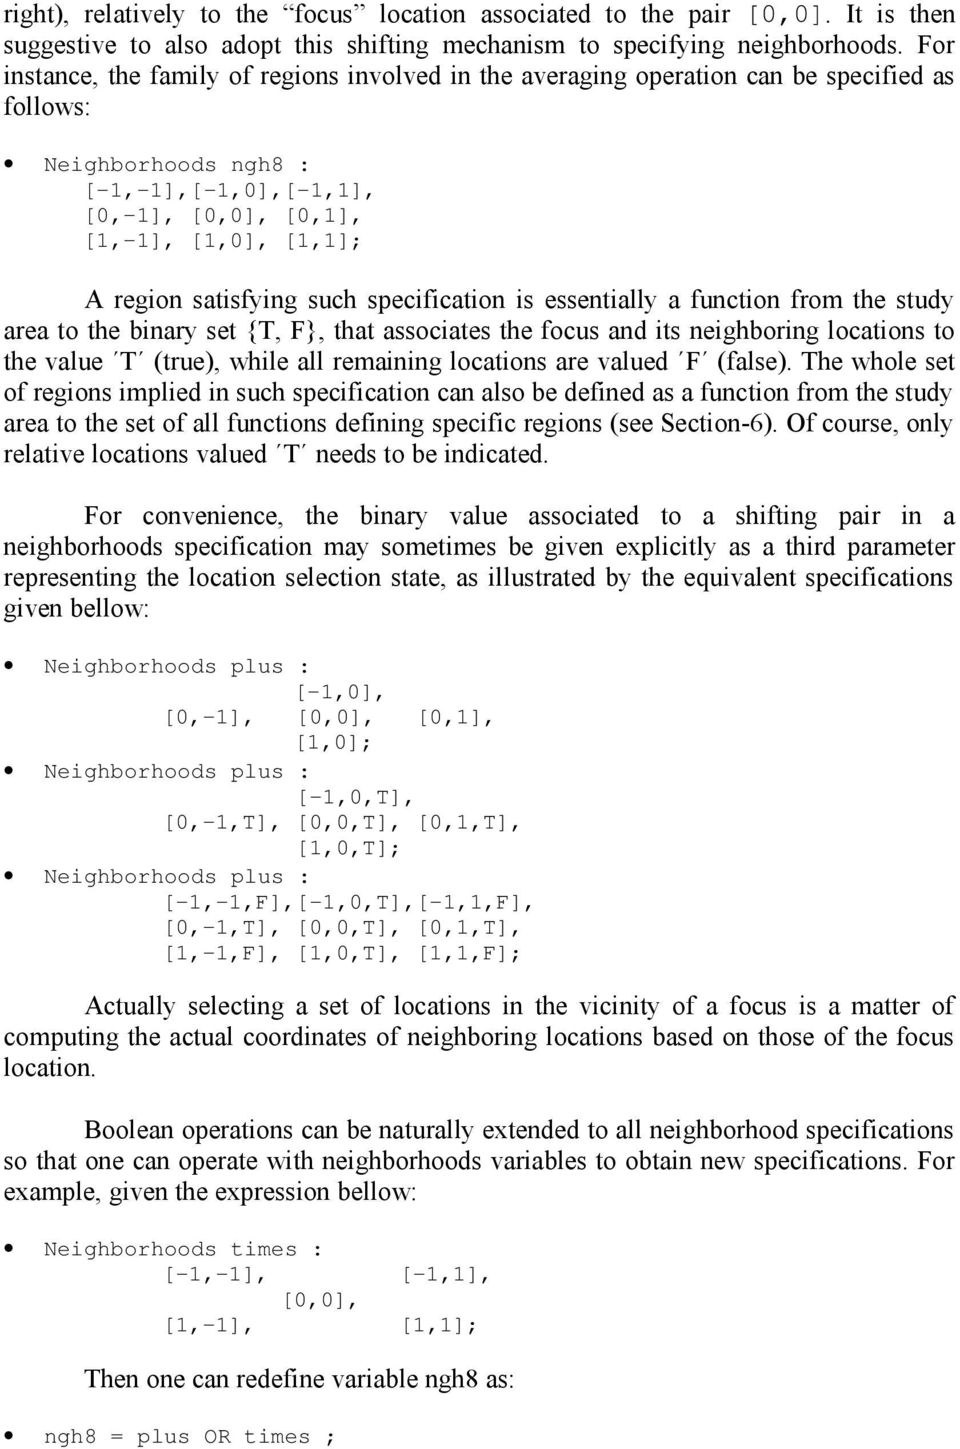 satisfying such specification is essentially a function from the study area to the binary set {T, F}, that associates the focus and its neighboring locations to the value T (true), while all